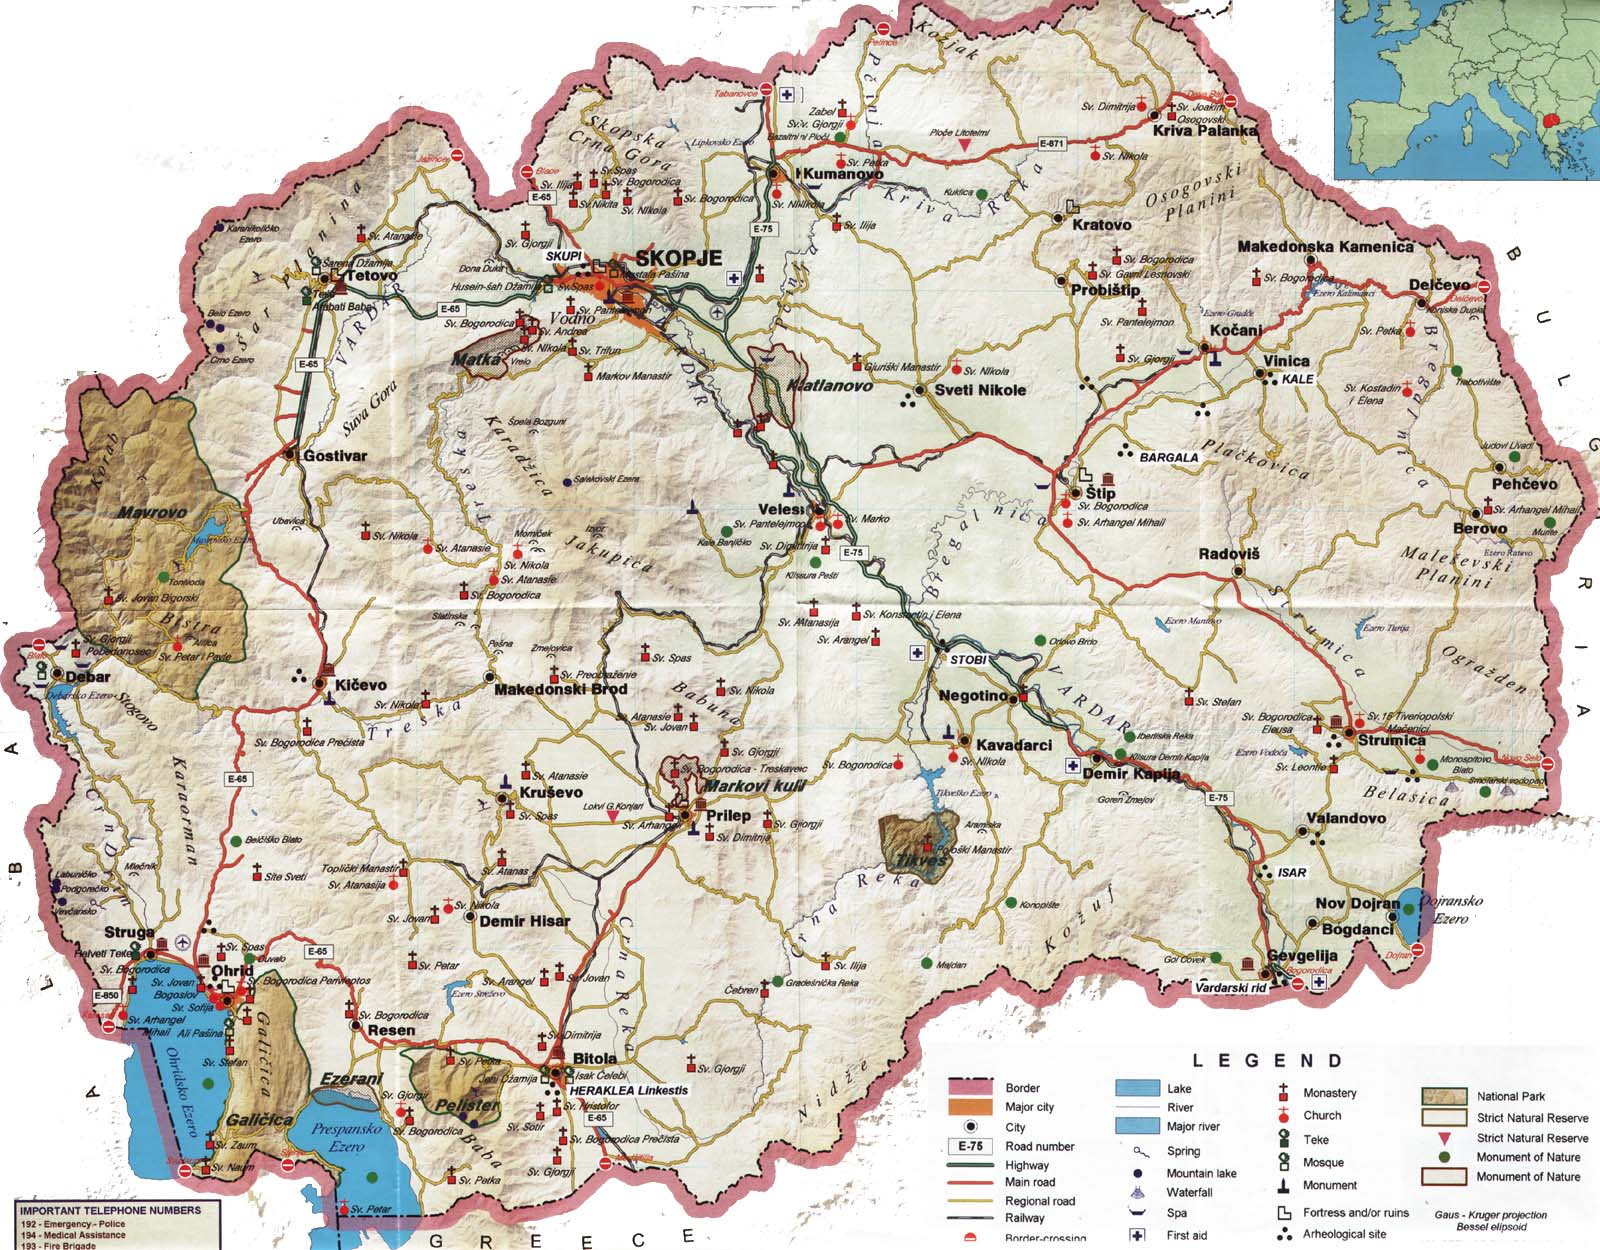 Macedonia in Maps - a Link Atlas on